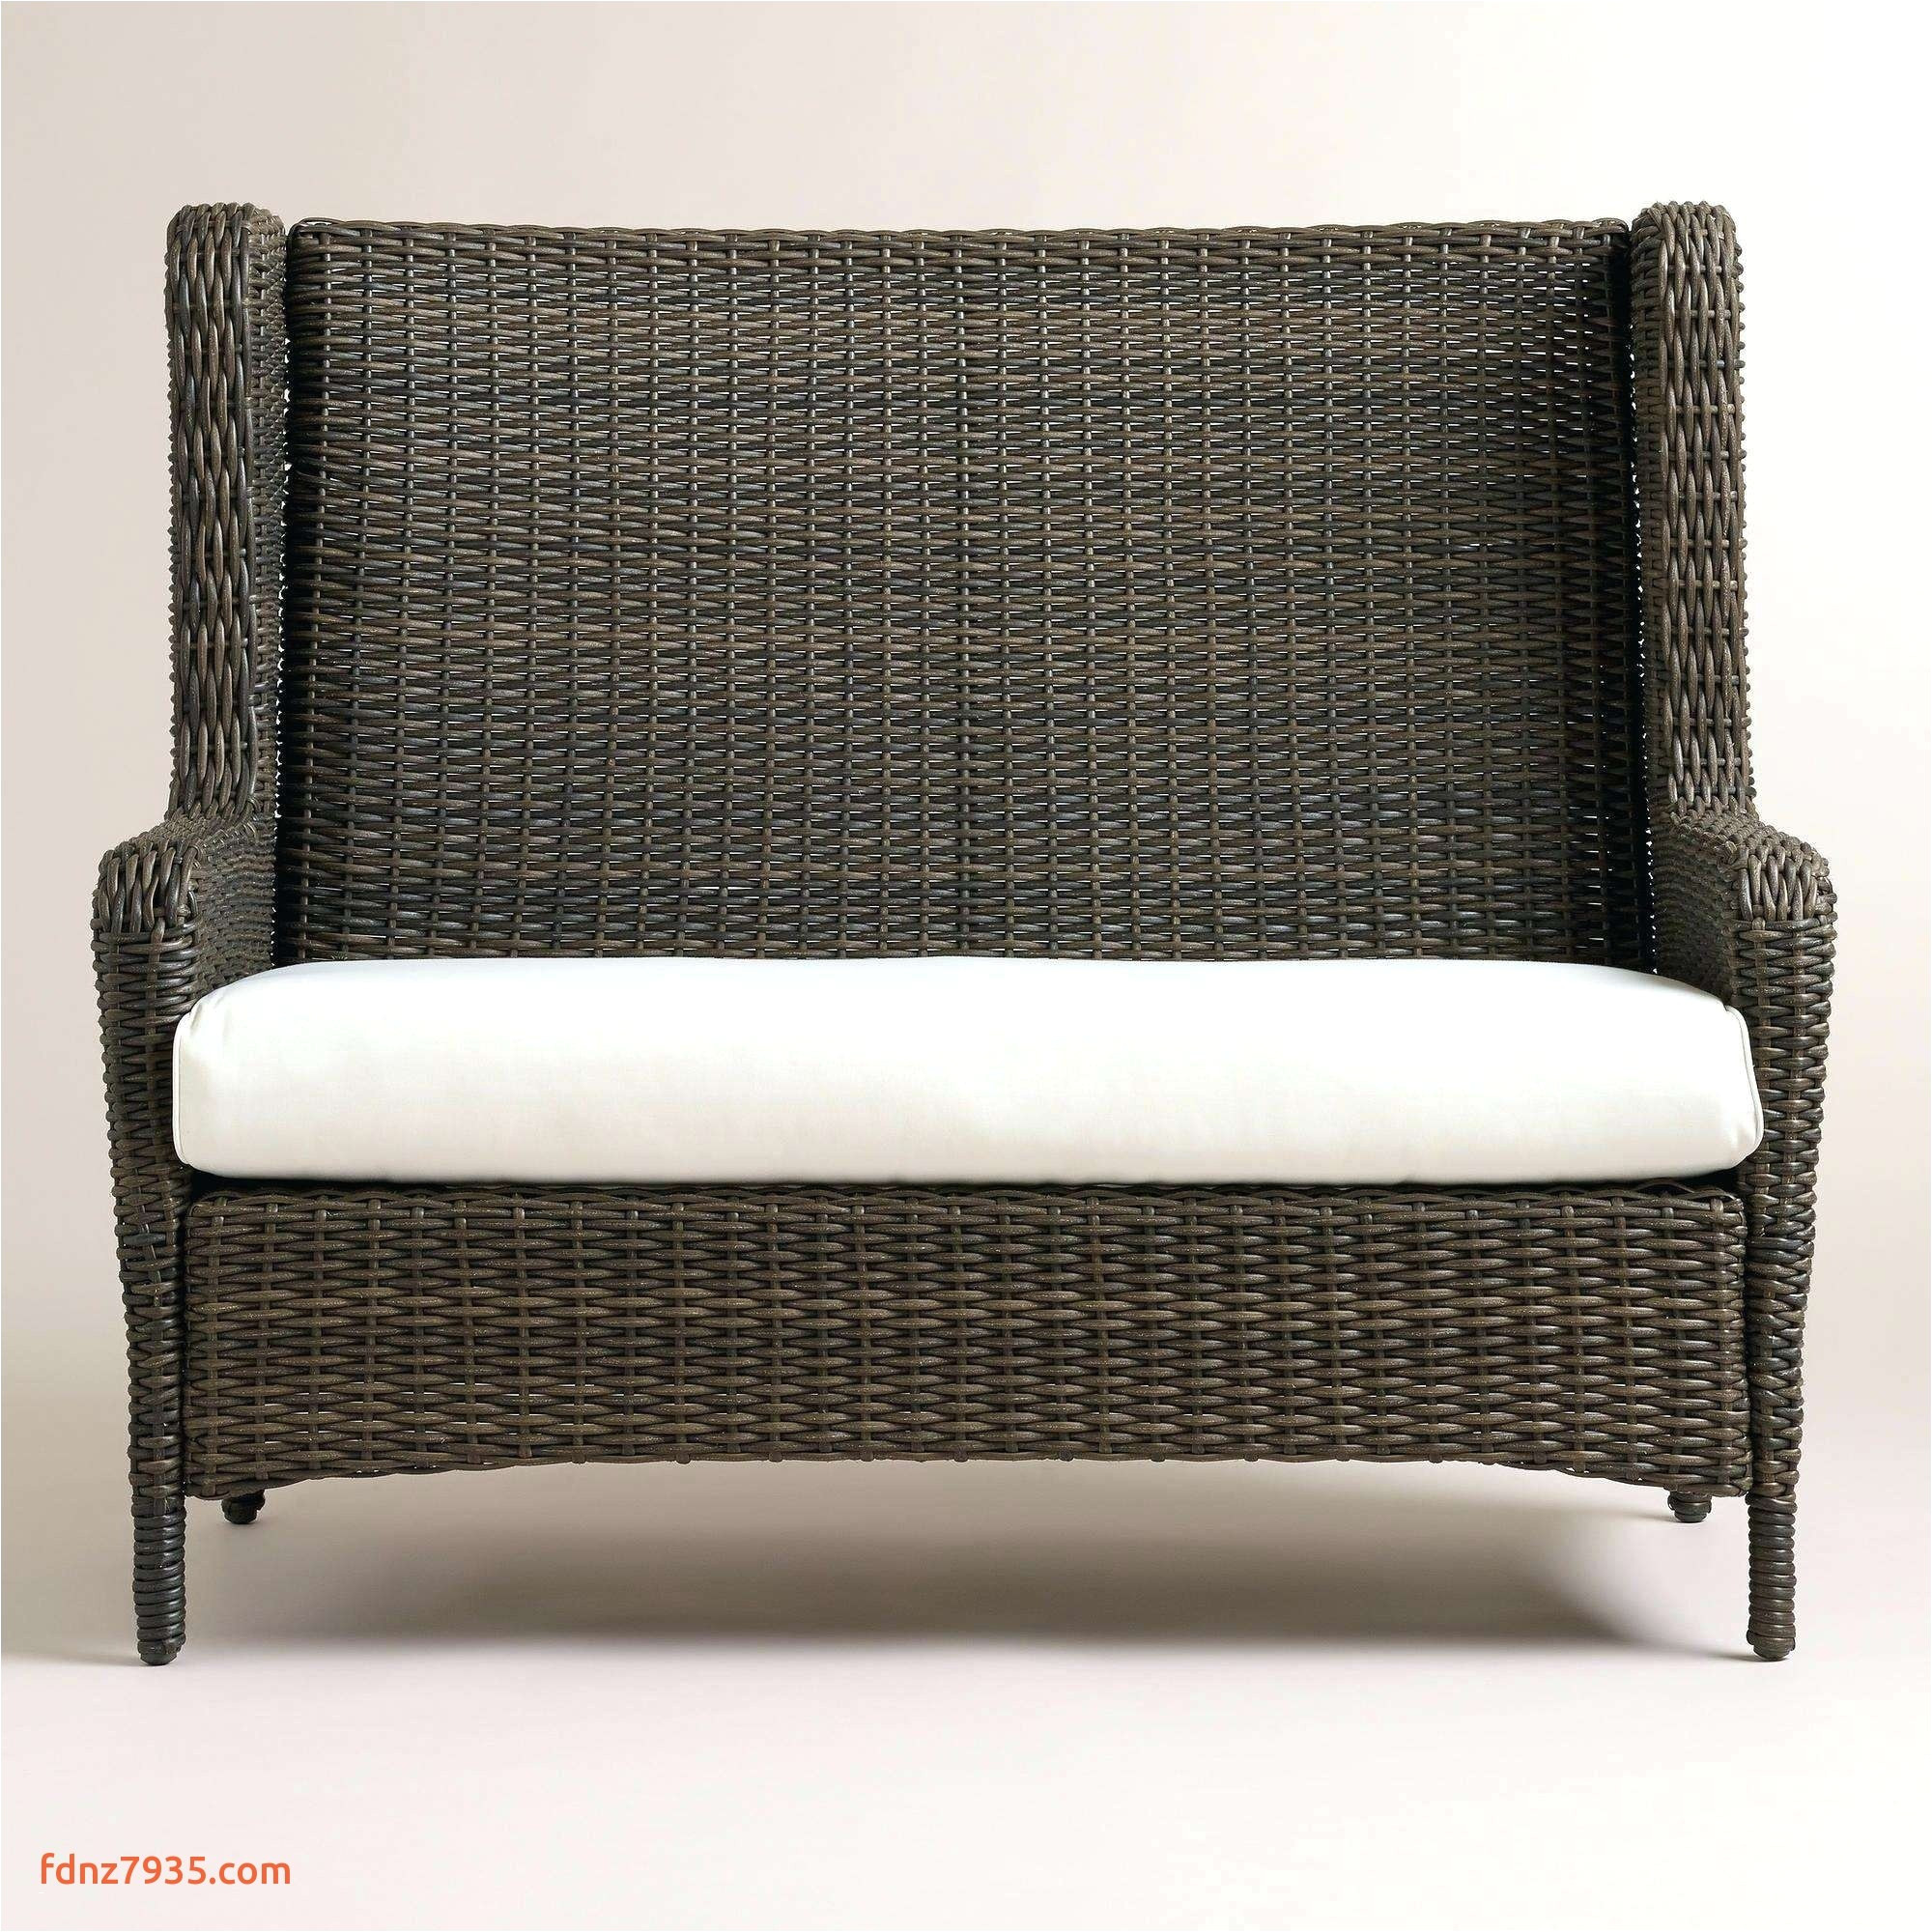 outdoor furniture sectional sofa new wicker outdoor sofa 0d patio chairs sale replacement cushions ideas